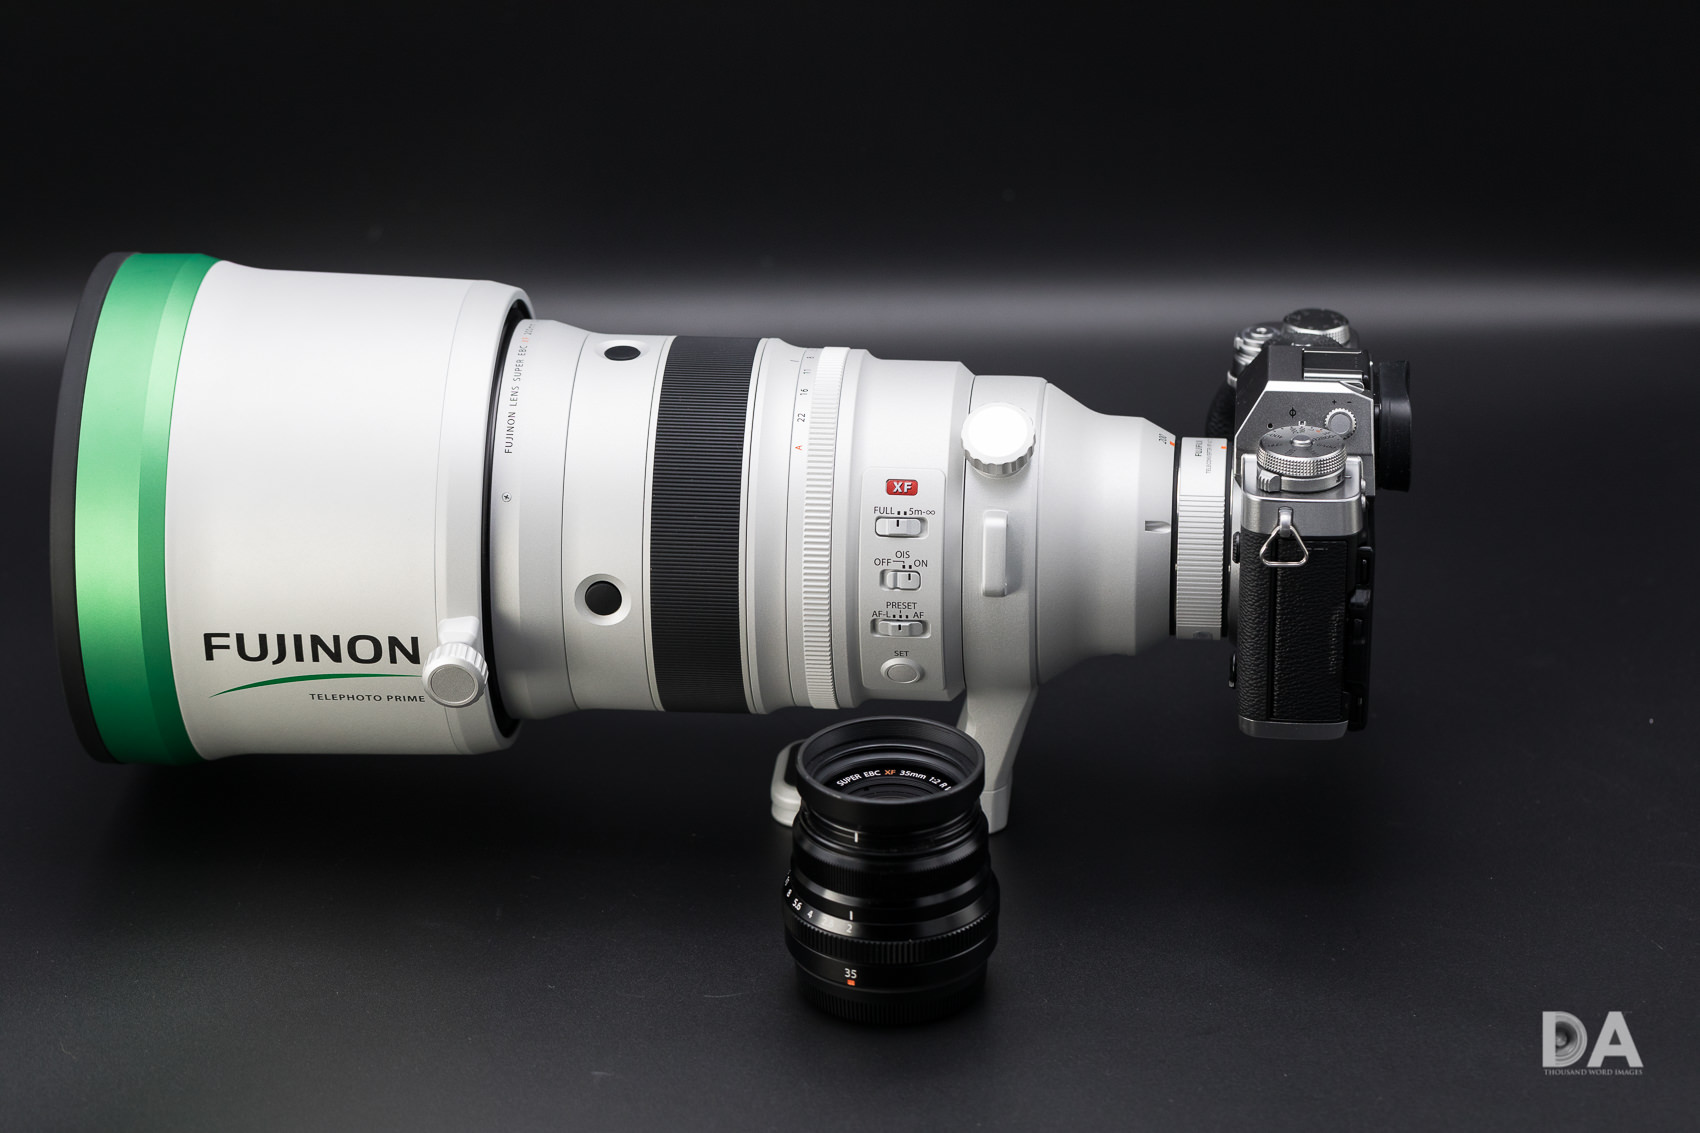 Fujinon 200mm Product-27